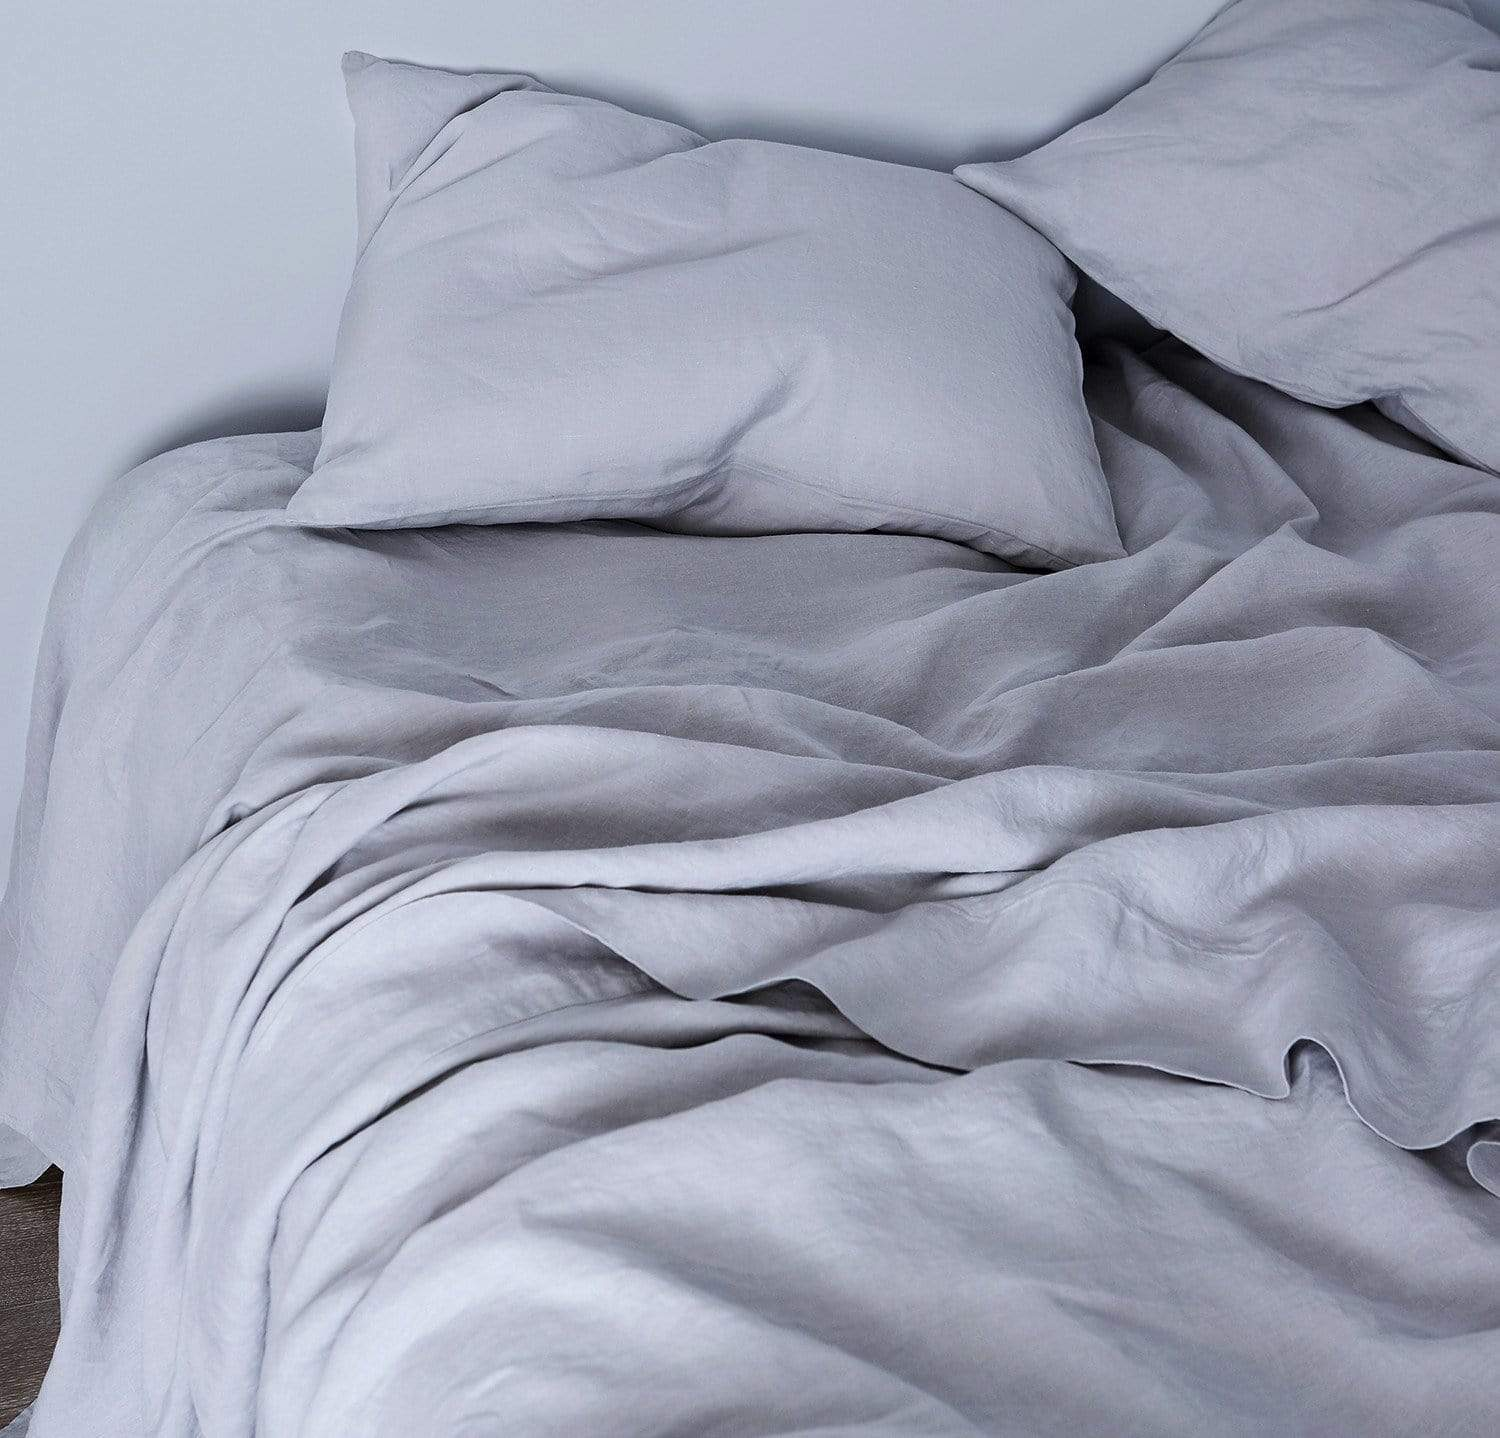 - Best Linen Sheets Made In USA By Rough Linen